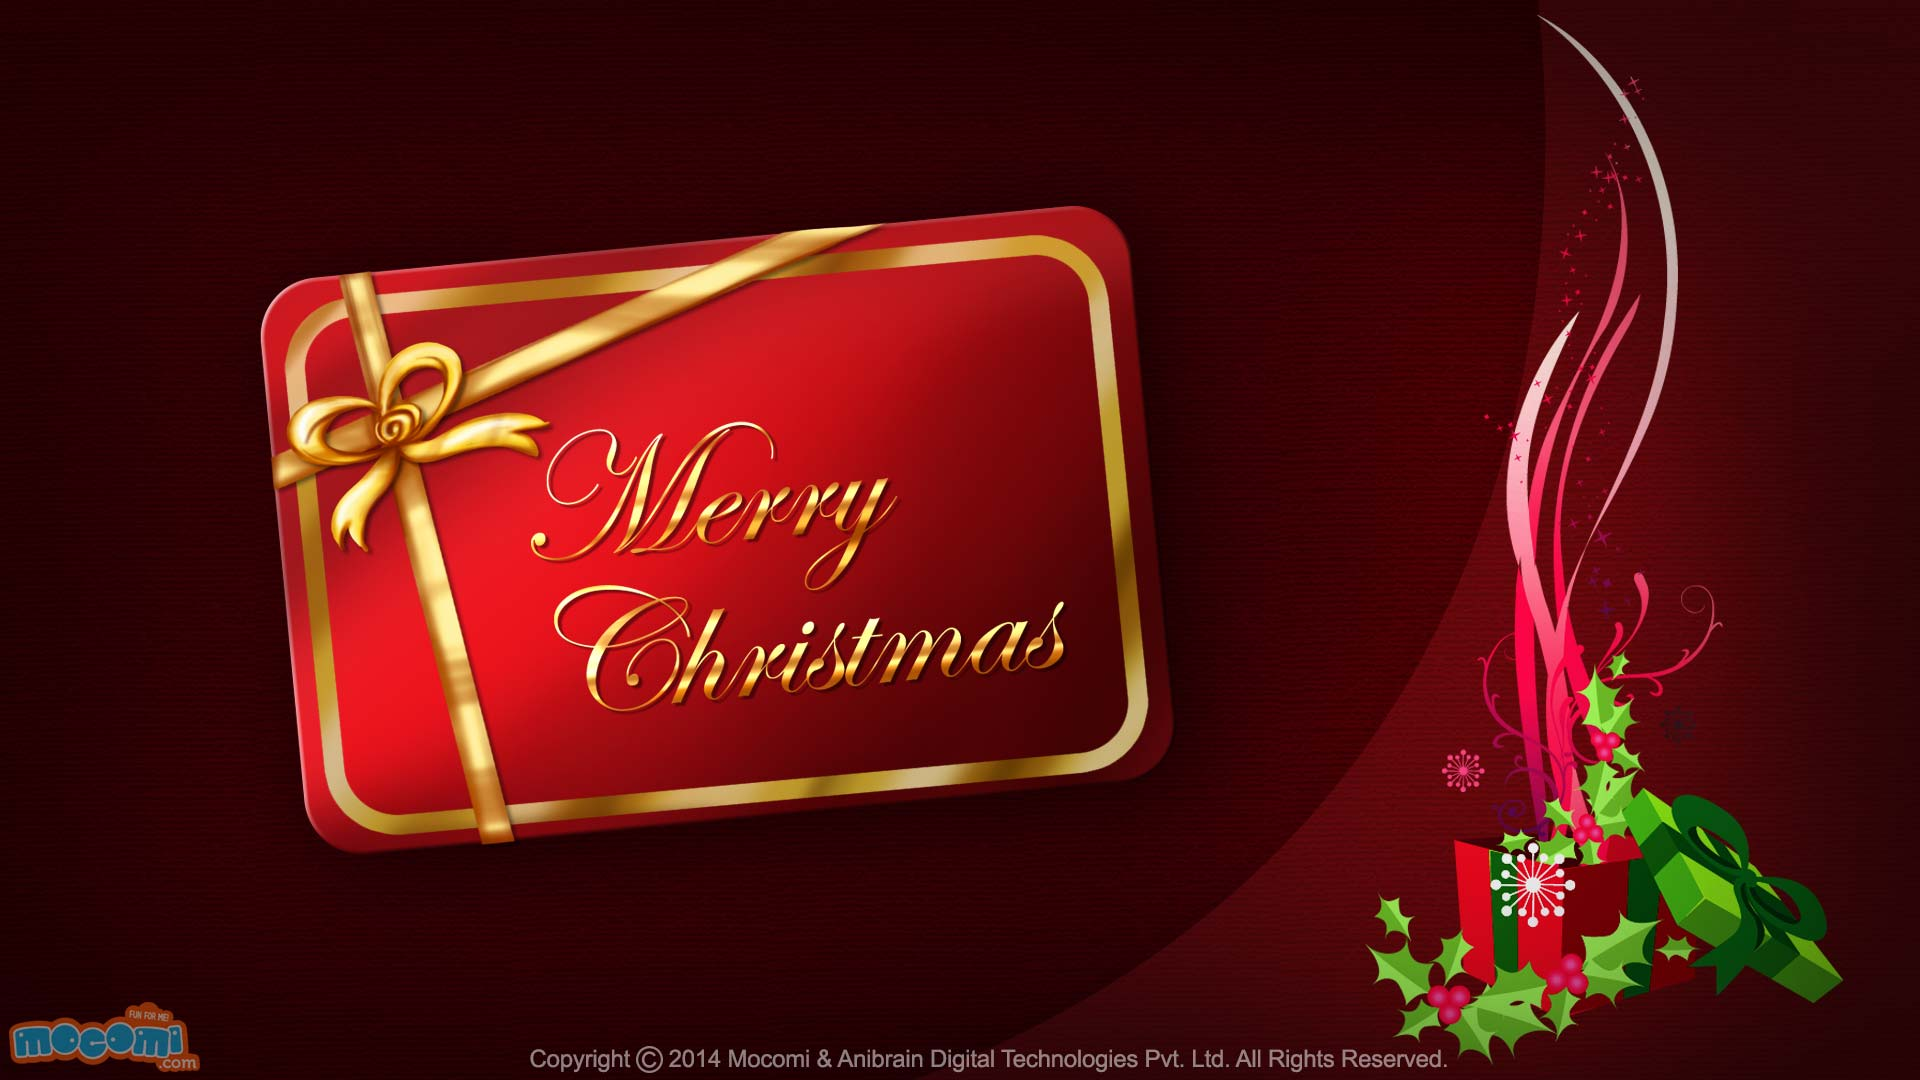 Merry Christmas- Gifts